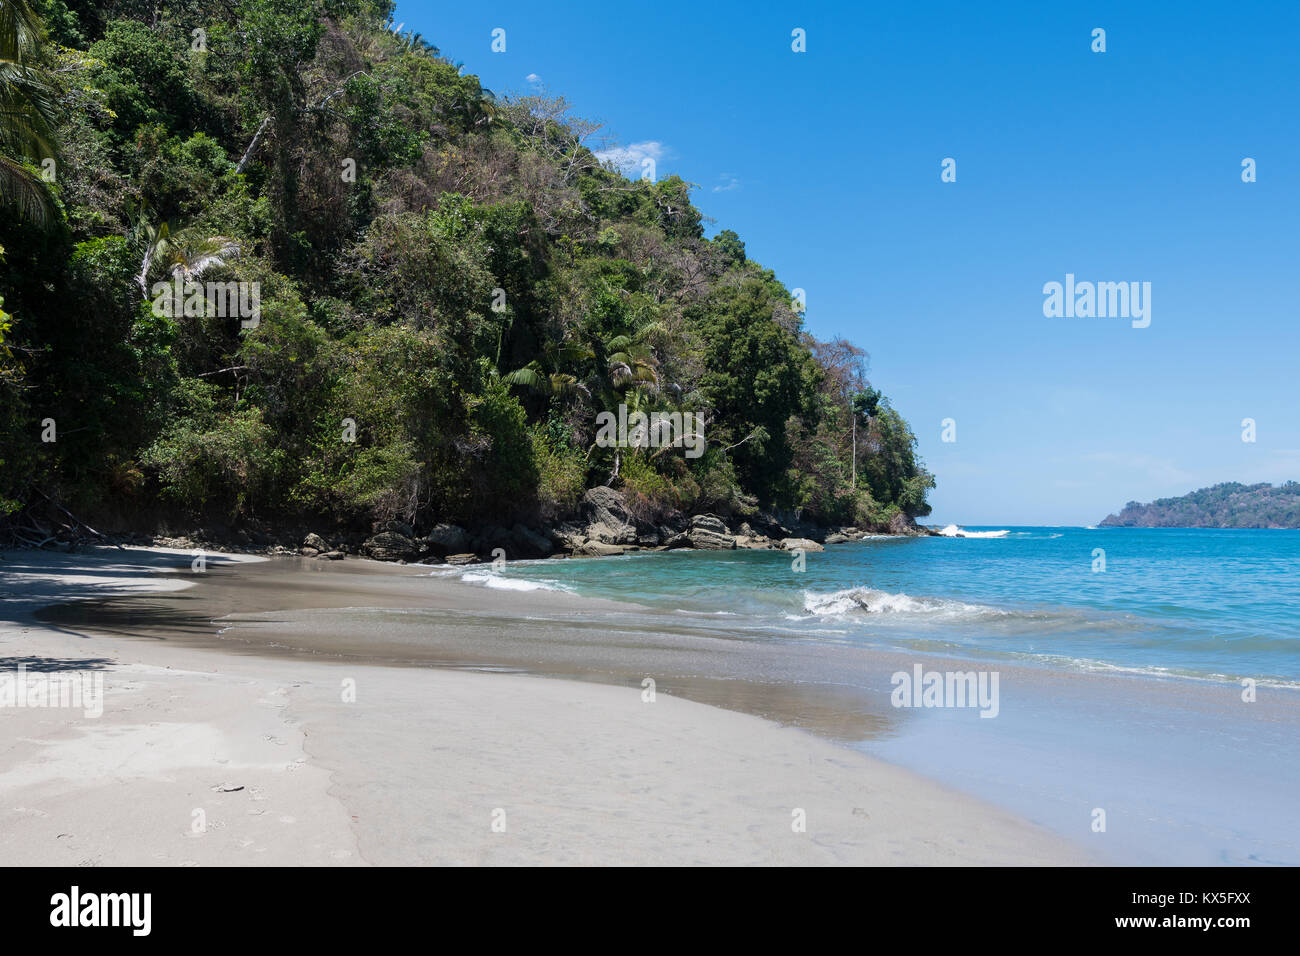 Palm Beach, Manuel Antonio National Park, Costa Rica - Stock Image